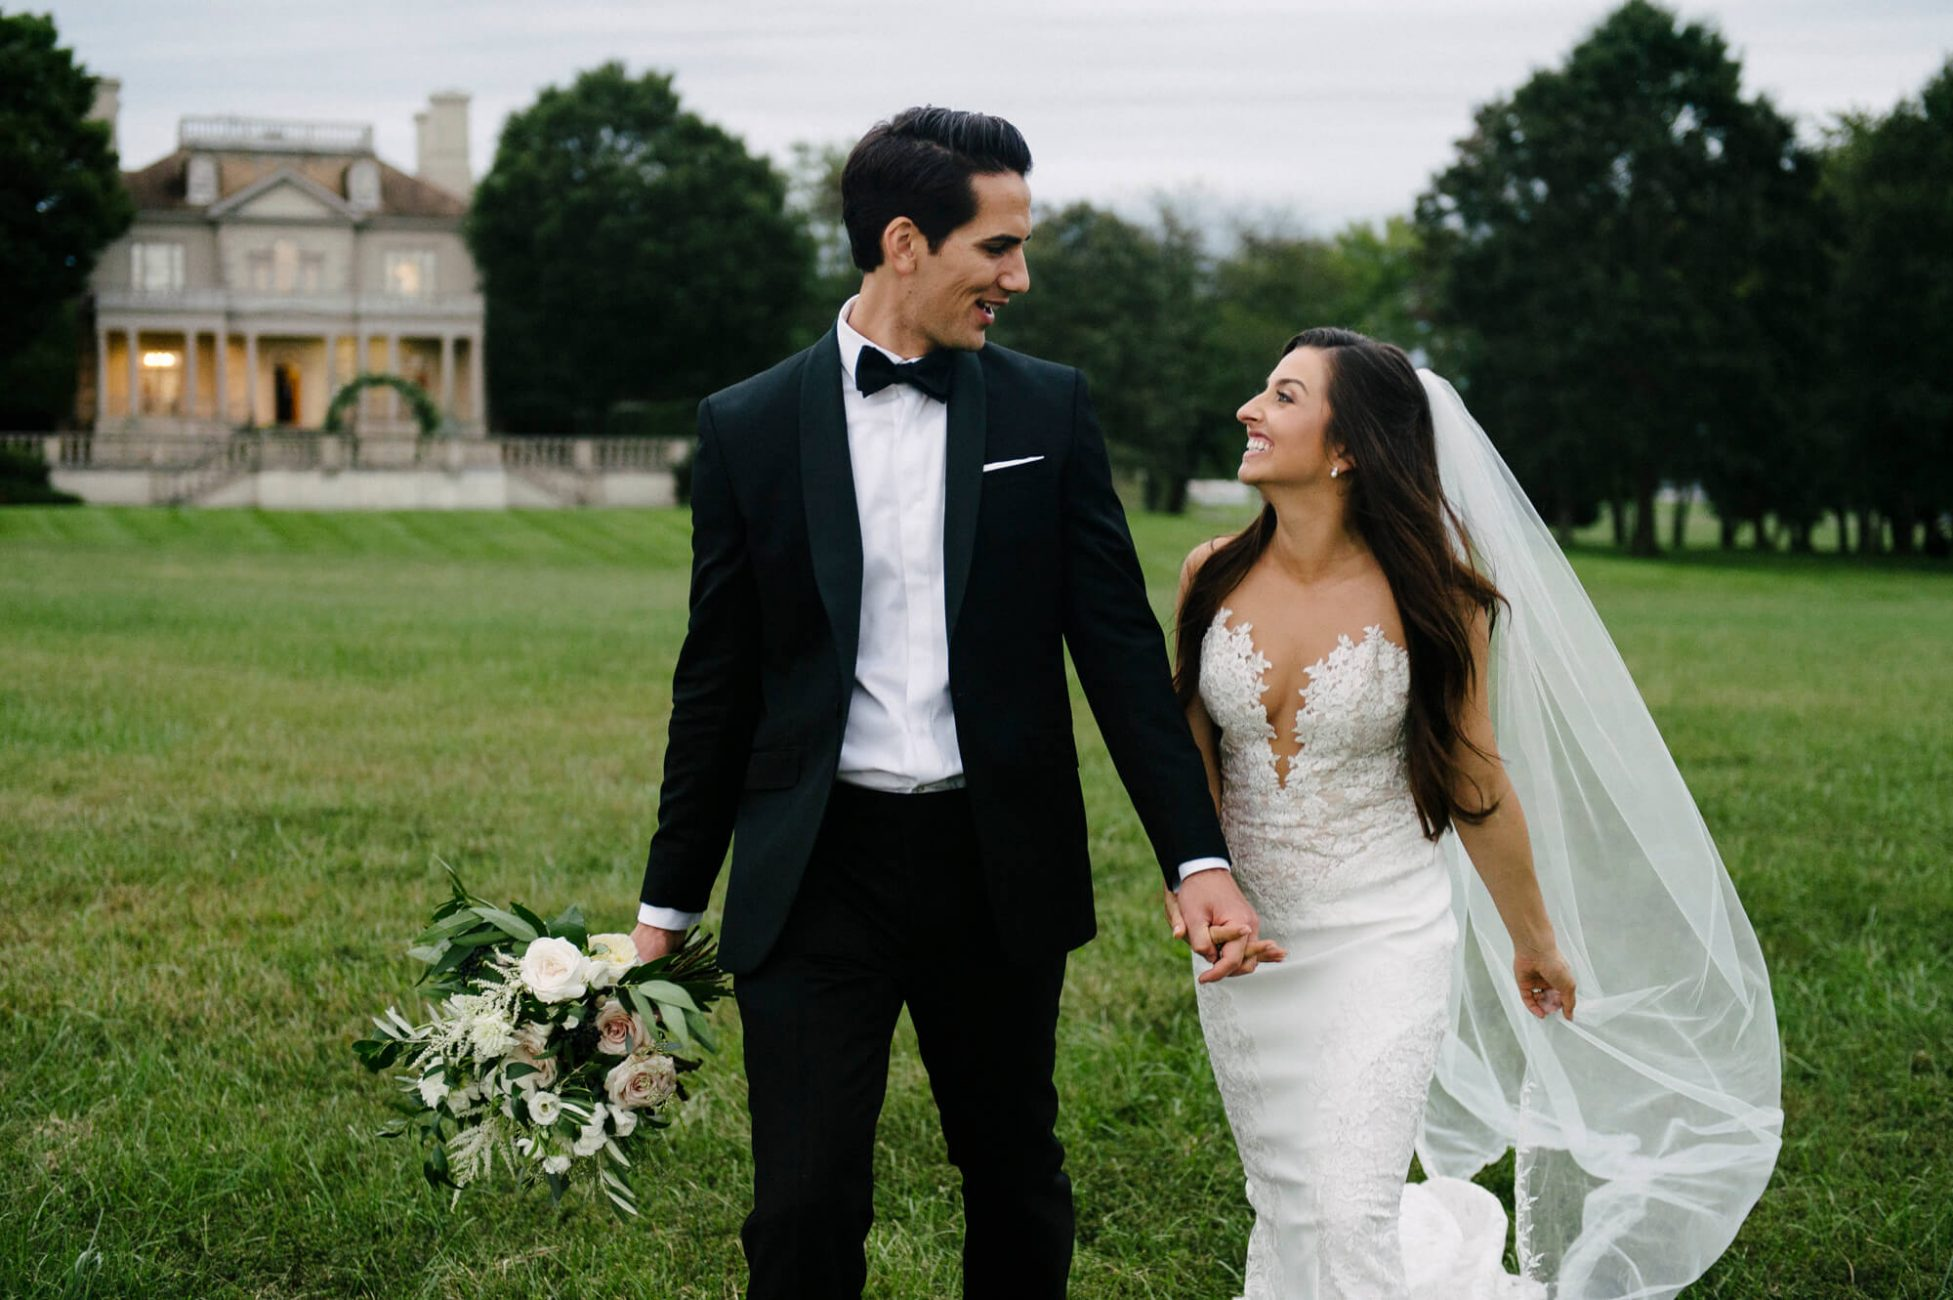 Husband and wife stroll the grounds of Great Marsh Estate after their classic destination wedding.